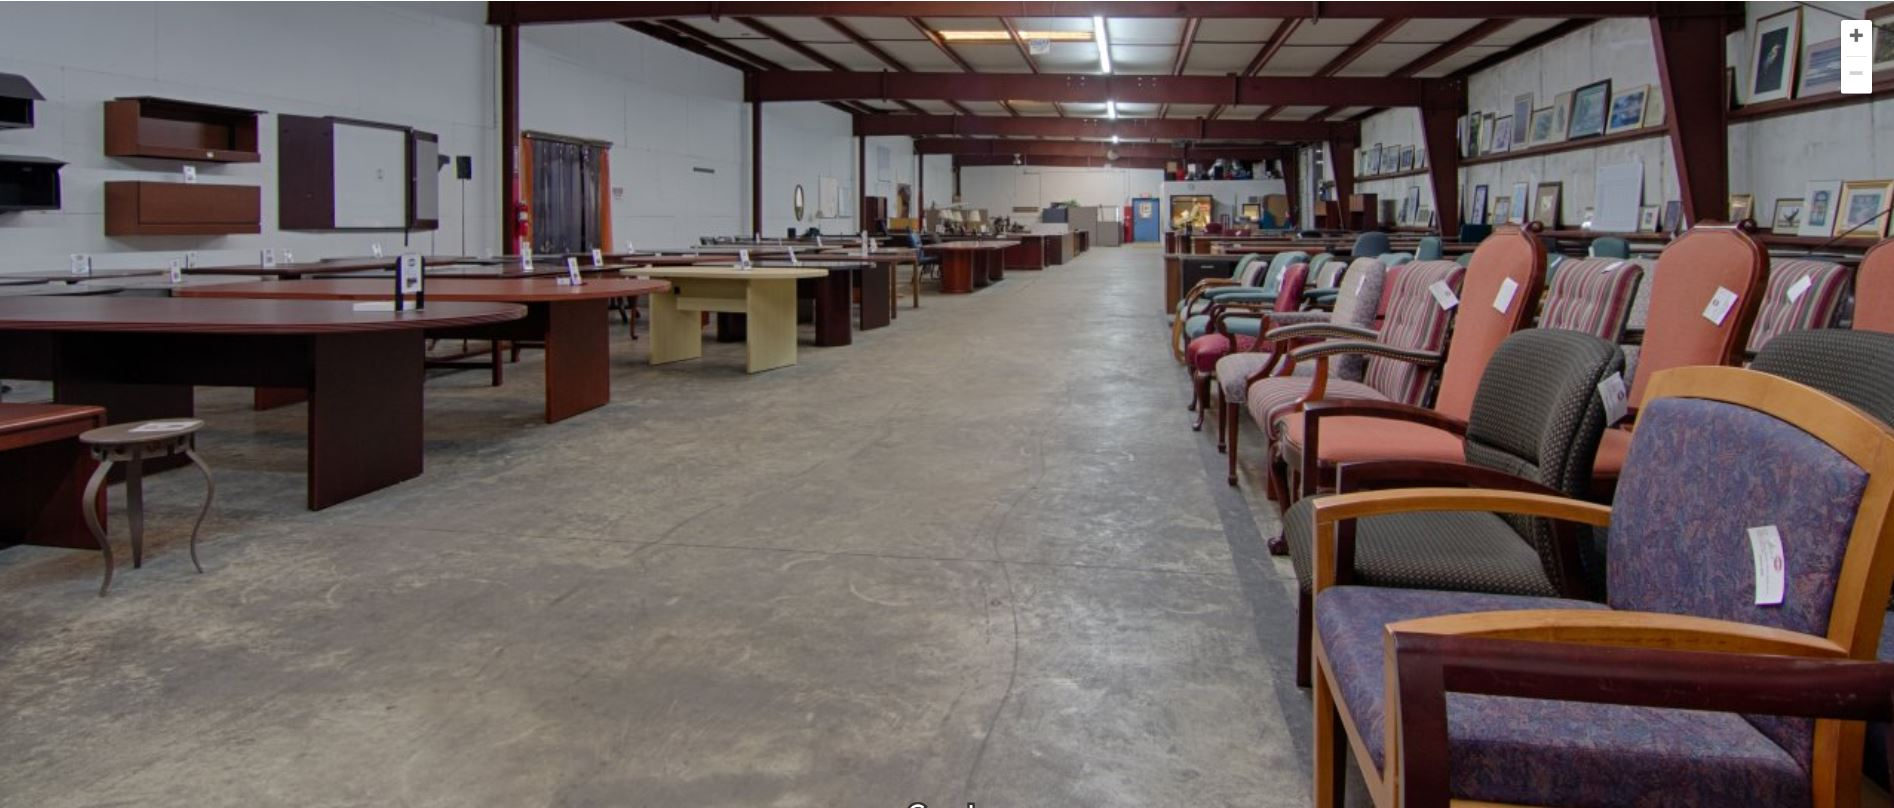 Wilcox Office Mart Largest Selection Of Used Office Furniture - Good wood furniture charleston sc